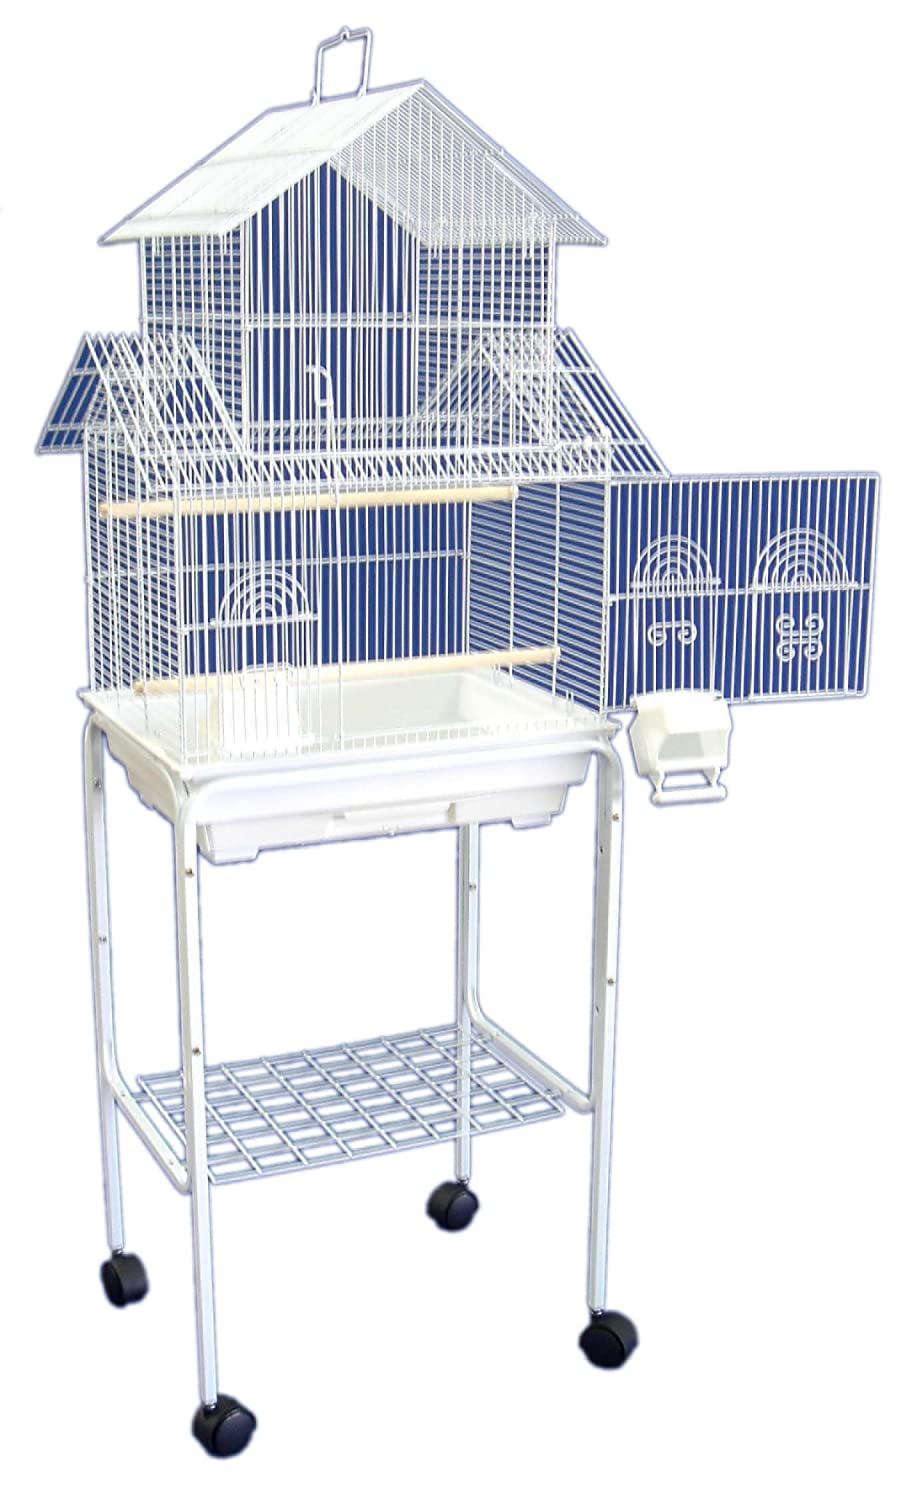 YML 5844 3/8' Bar Spacing Pagoda Bird Cage with Stand 18 x 14/Small White YML GROUP INC 5844_4814WHT